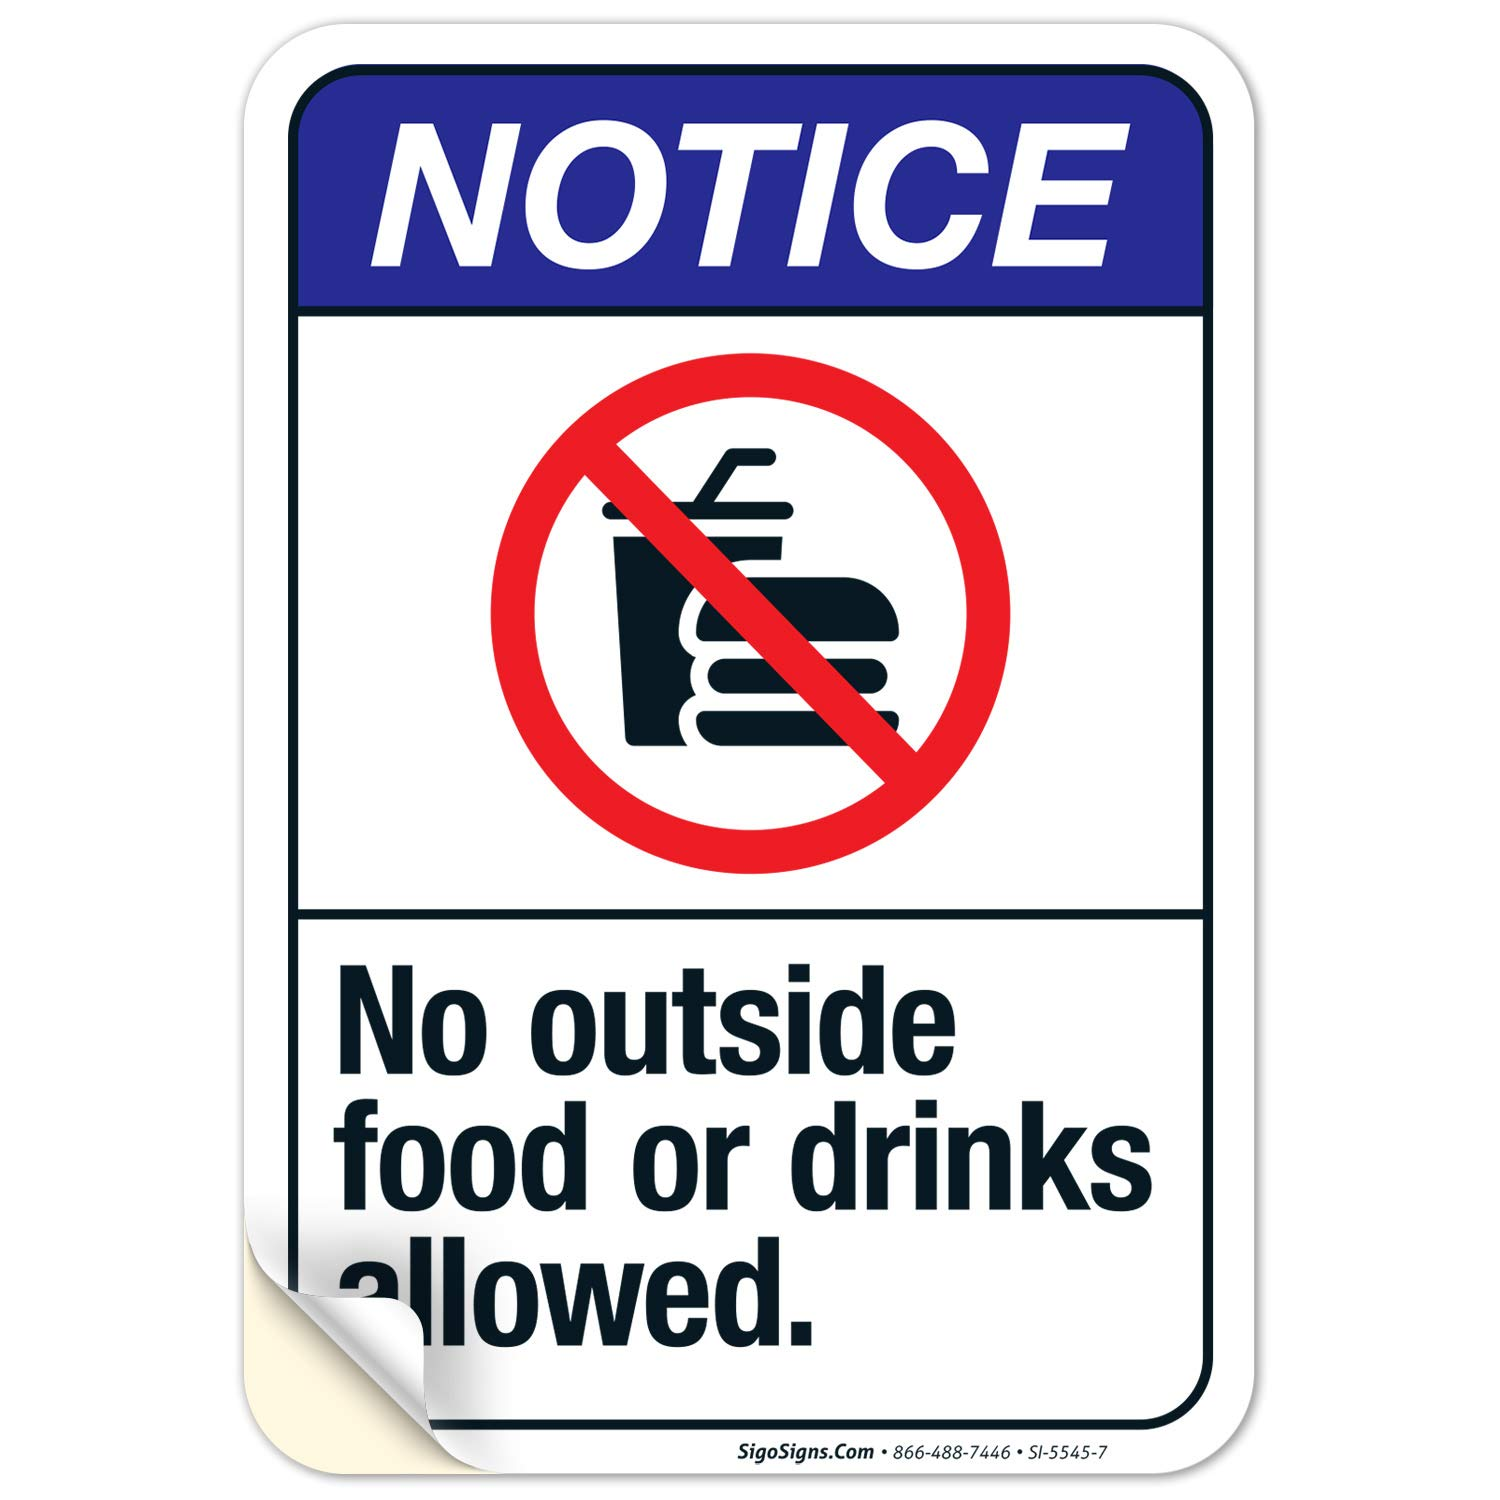 No Outside Food Or Drinks Allowed Sign, ANSI Notice Sign, (SI-5545) 10x7 Inches, 4 Mil Vinyl Decal Stickers Weather Resistant UV Protected, Made in USA by Sigo Signs